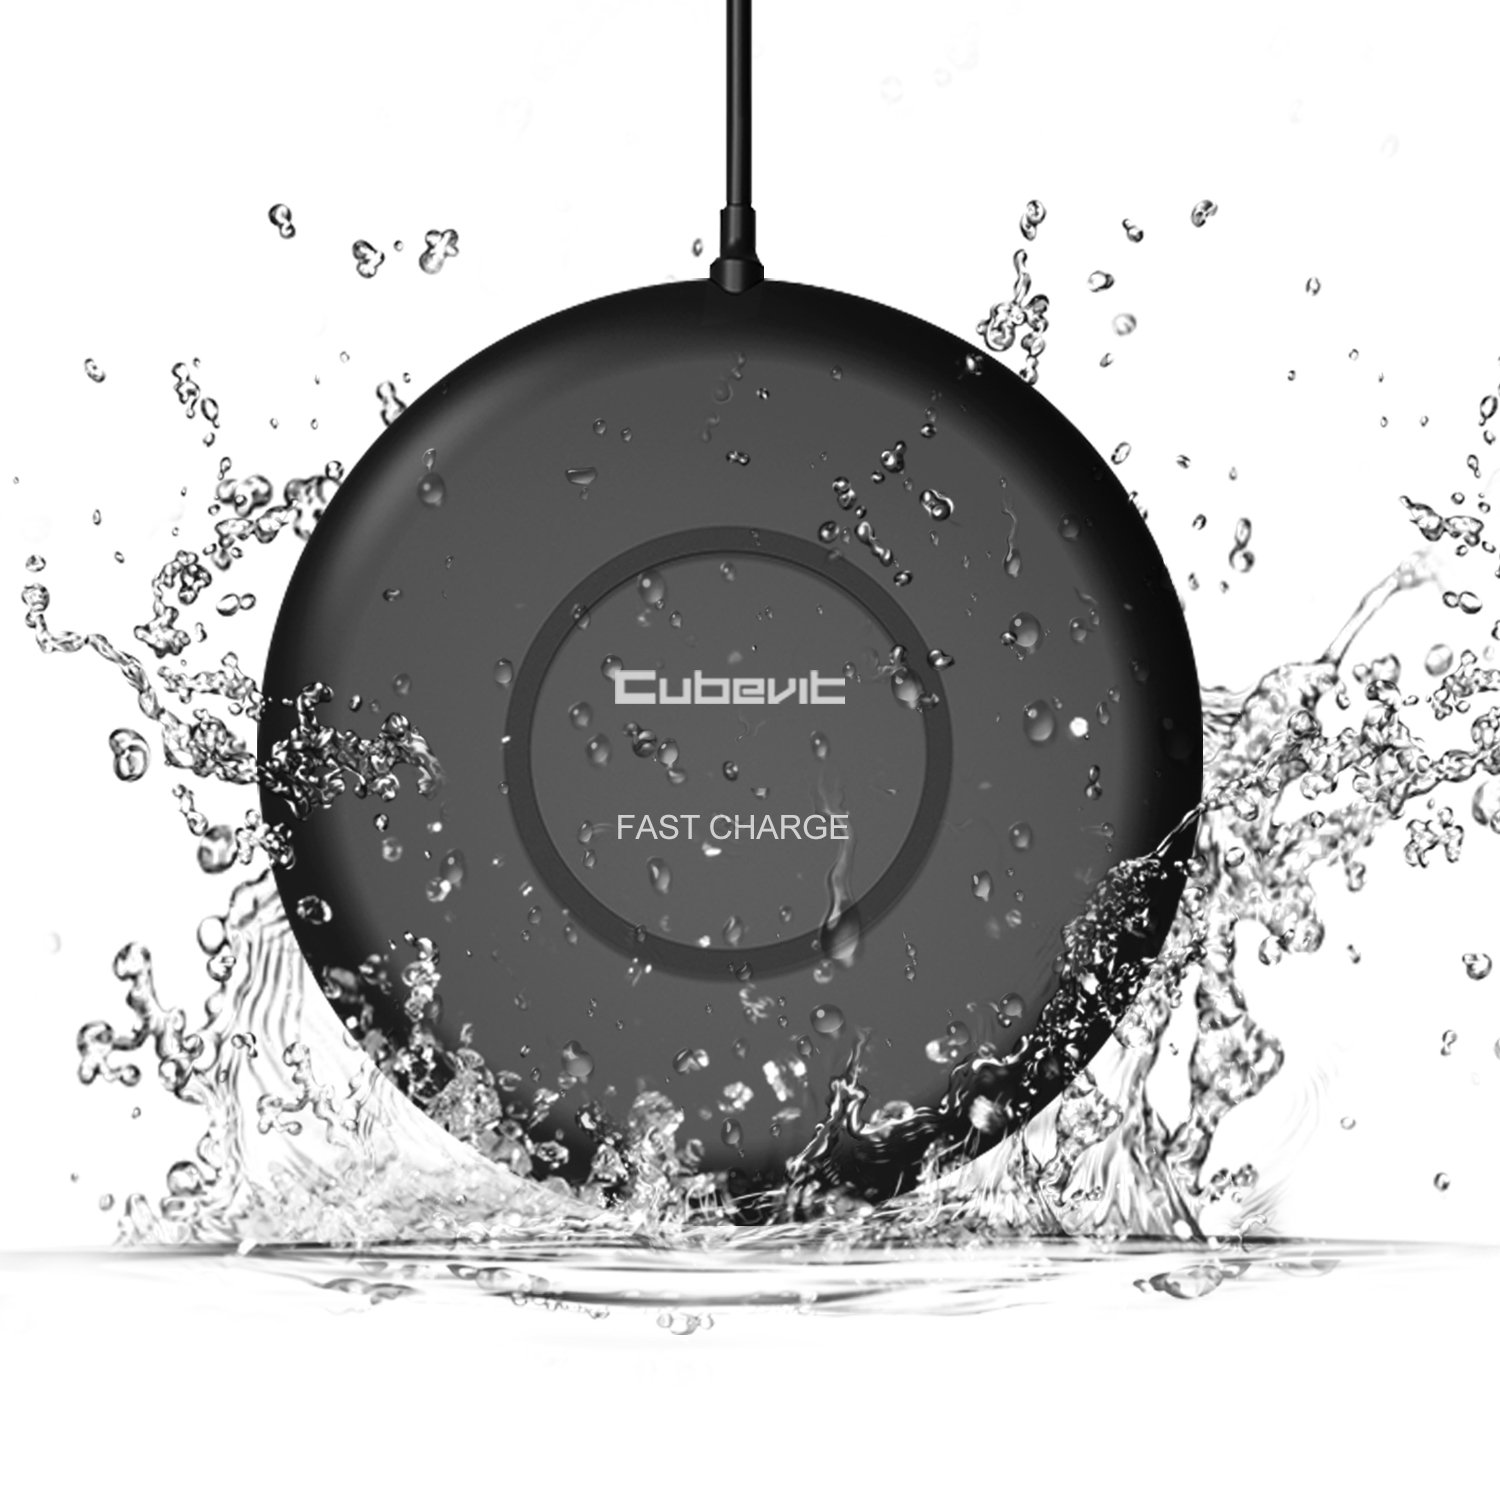 Cubevit [IPX5 Waterproof] Fast Wireless Charger, 7.5W Qi Fast Wireless Charging Pad for Apple iPhone X 8 8 Plus, 10W Fast Charge for Samsung Galaxy S9 S9 Plus Note 9/8/5 S8 Plus S7 Edge S6 Edge Plus